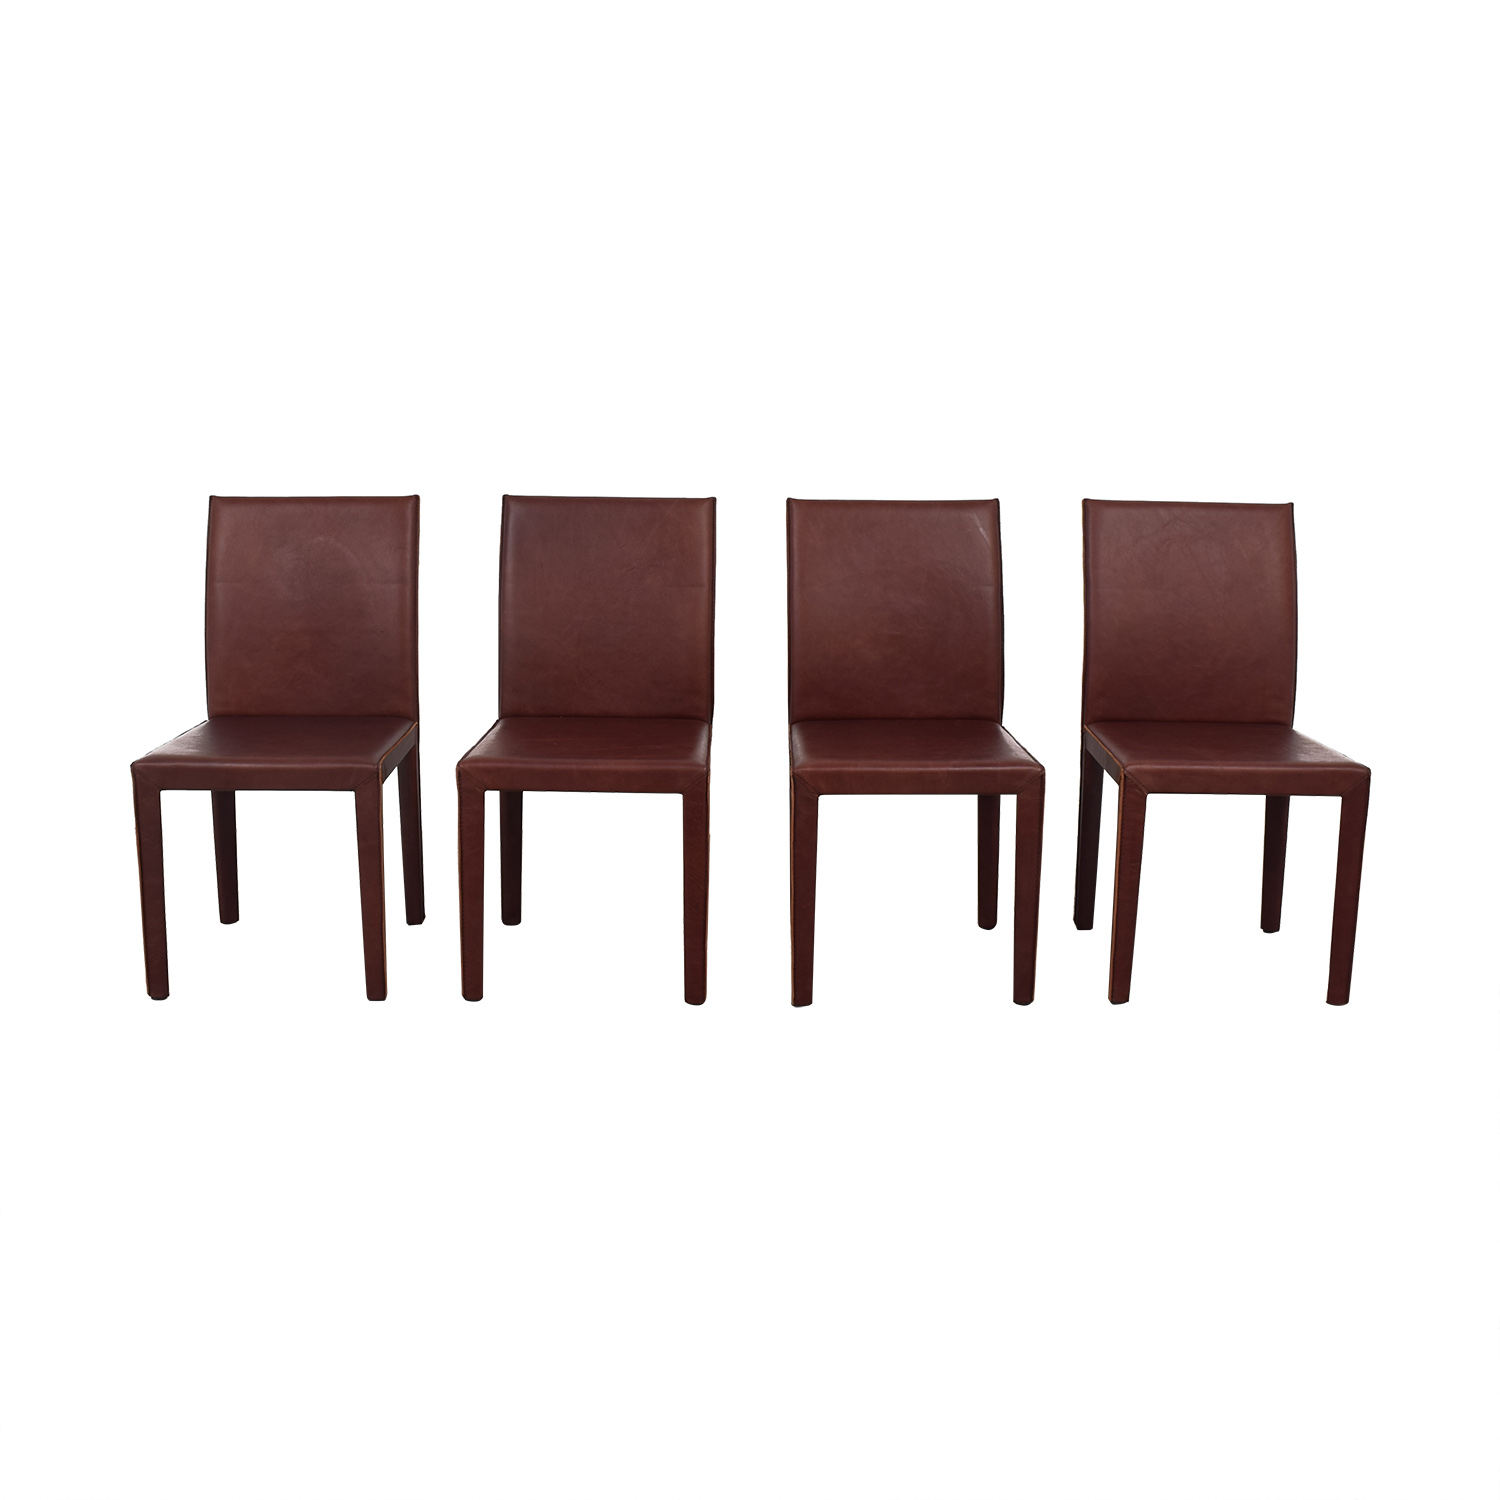 Crate & Barrel Crate & Barrel Folio Merlot Dining Chairs used